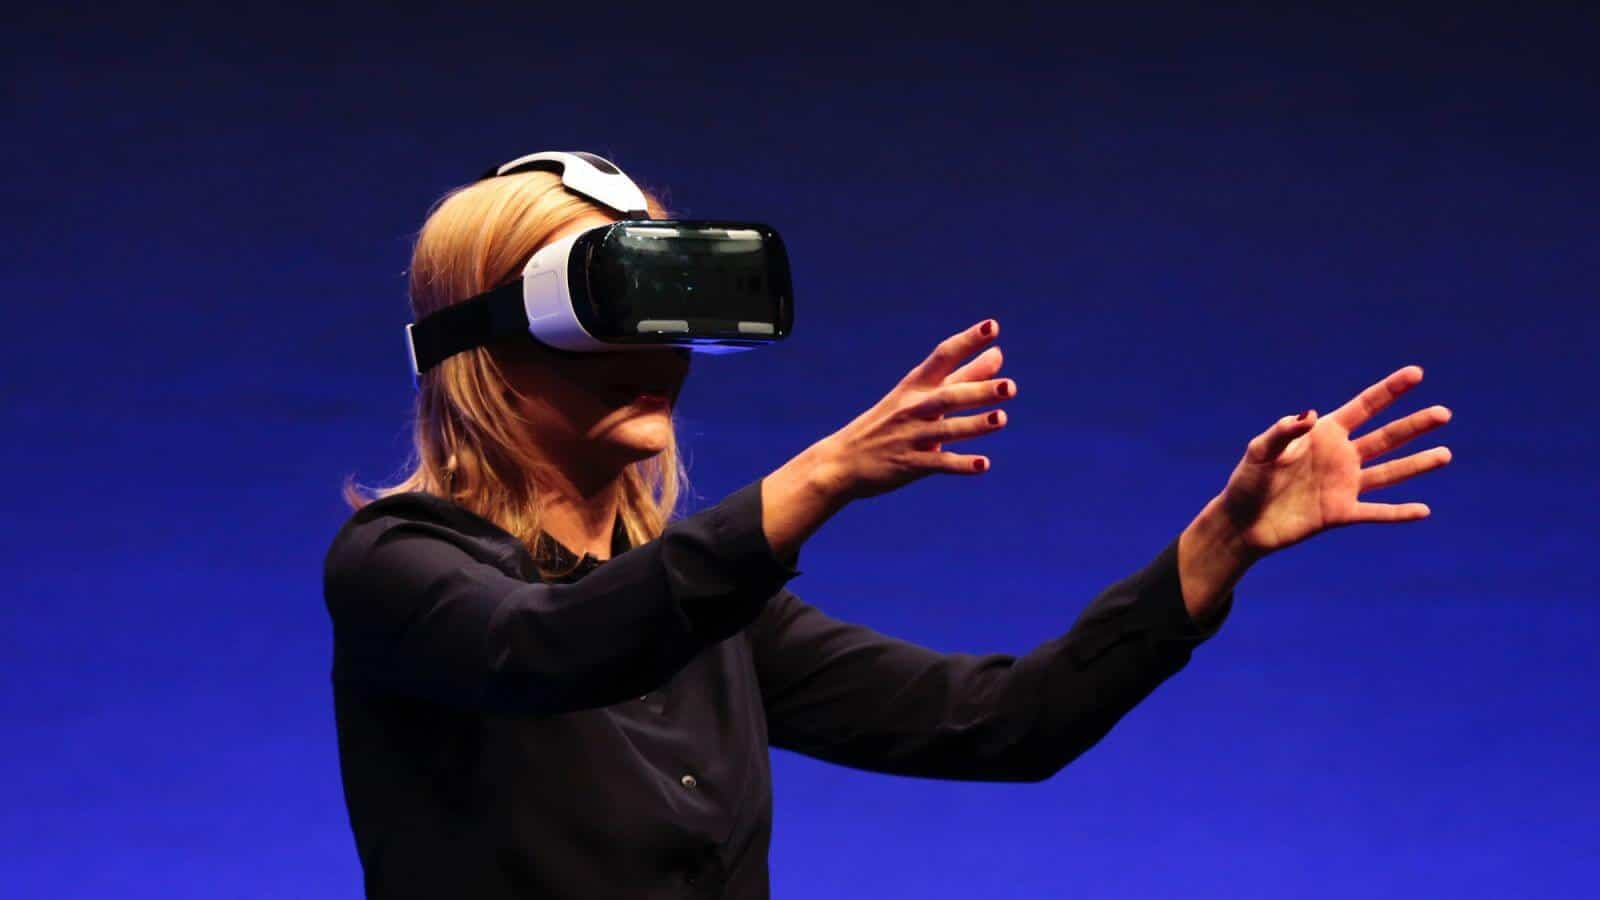 Apple Inc (AAPL) Virtual Reality